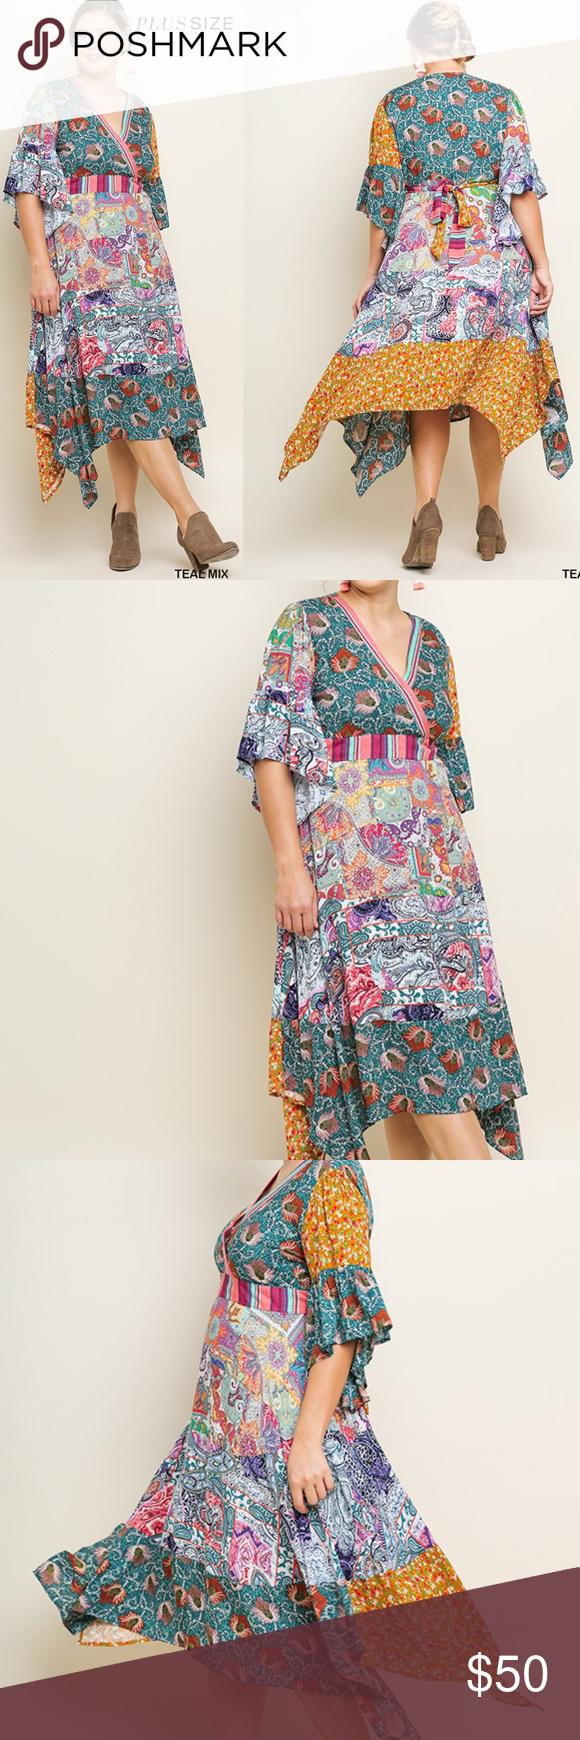 0a7ac74f21d Boho Midi Garden Party Dress Coming Soon! Please comment your size -